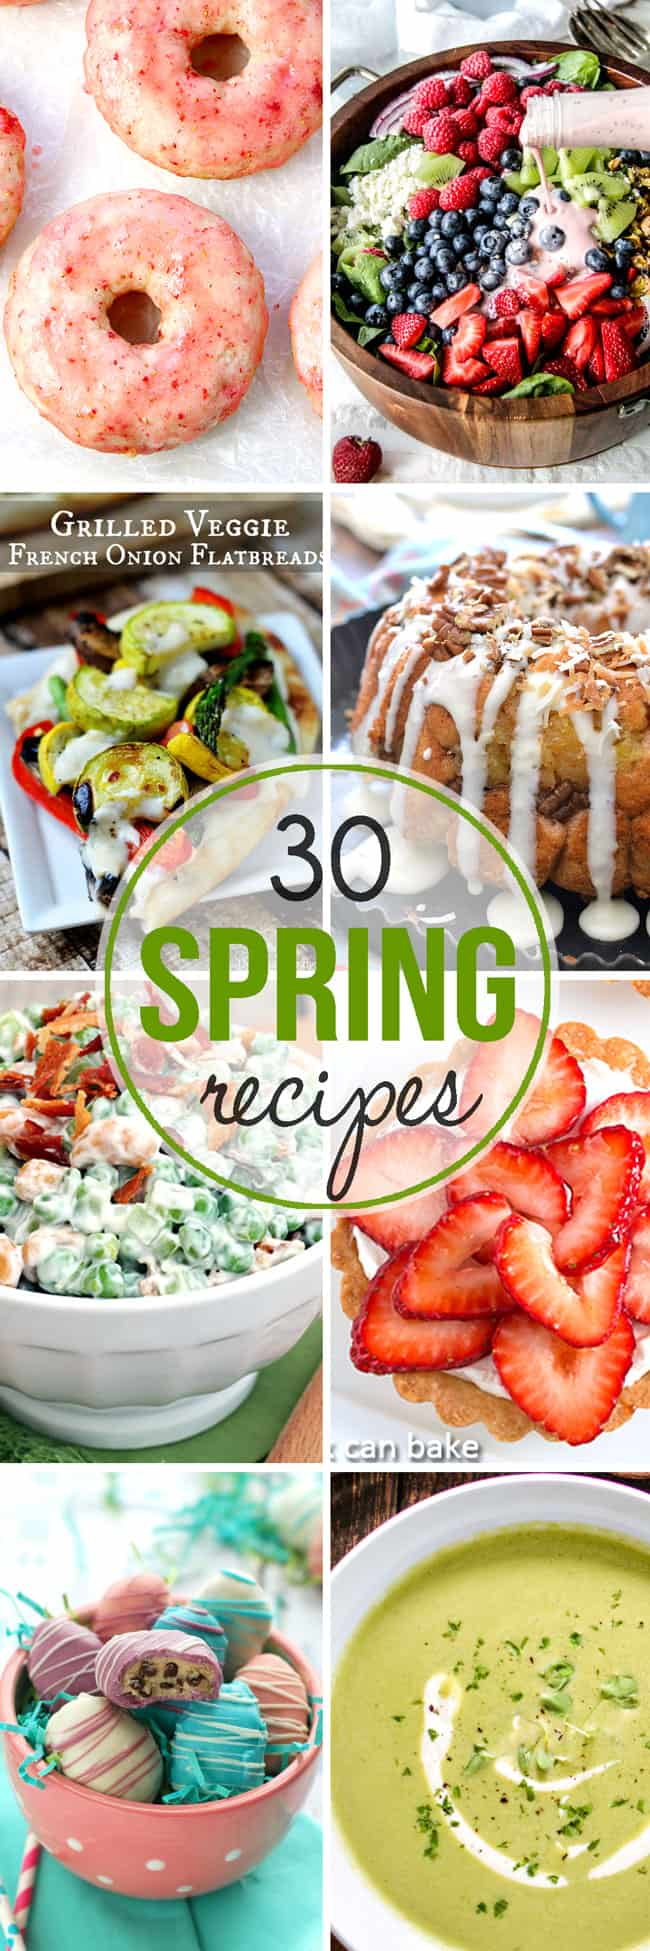 30 Recipes to Welcome in Spring!